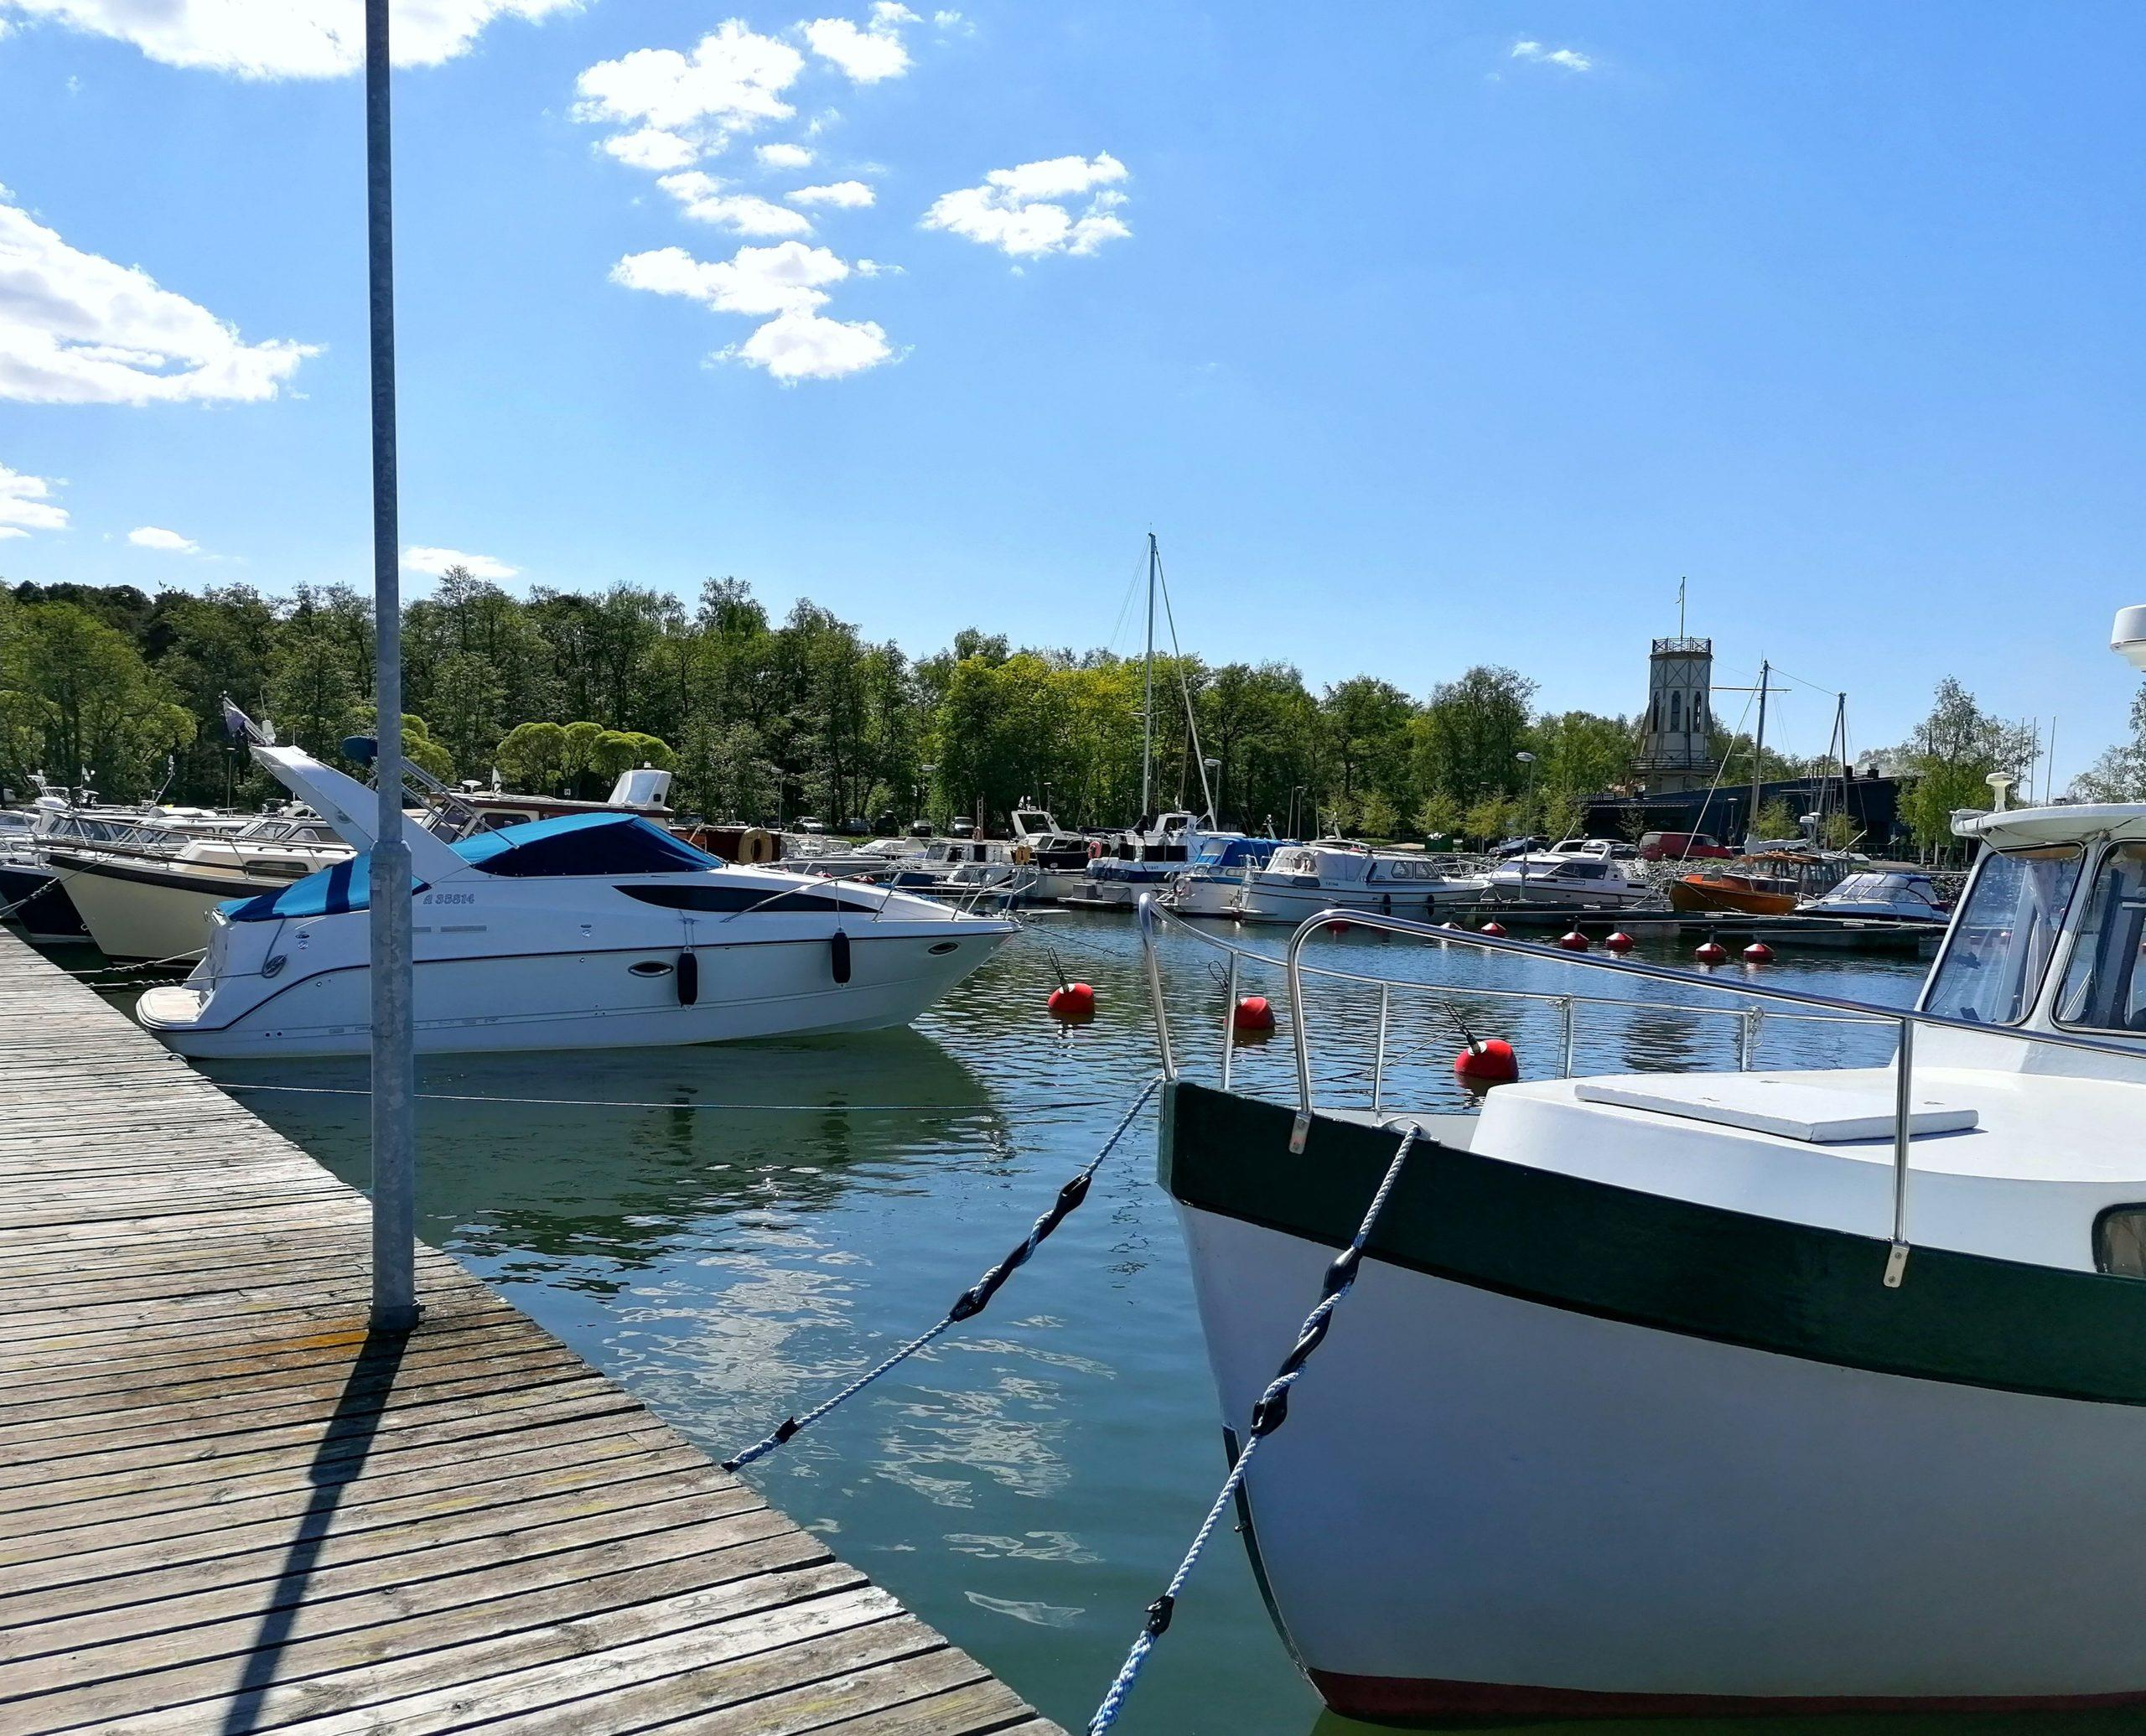 Boat insurance protects your boat all year around